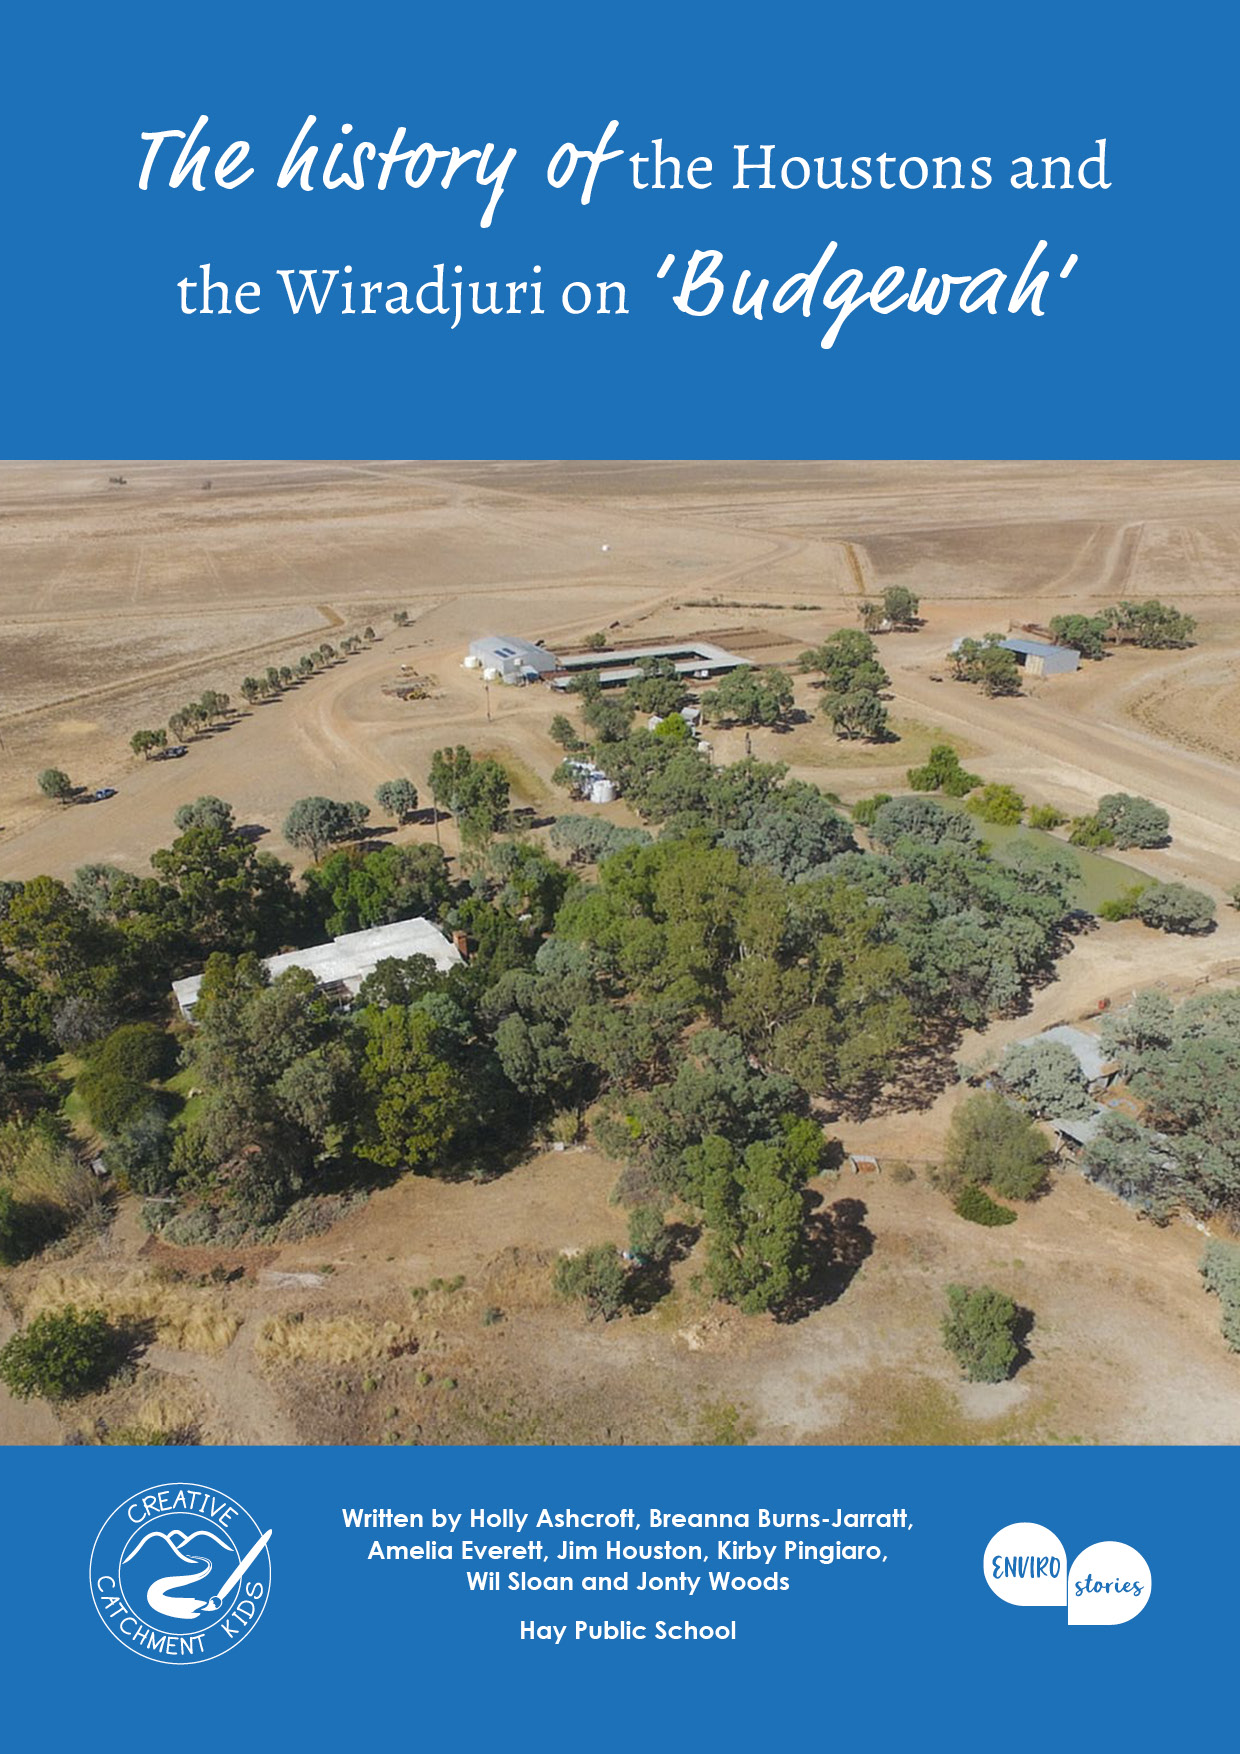 The history of the Houstons and the Wiradjuri on 'Budgewah'